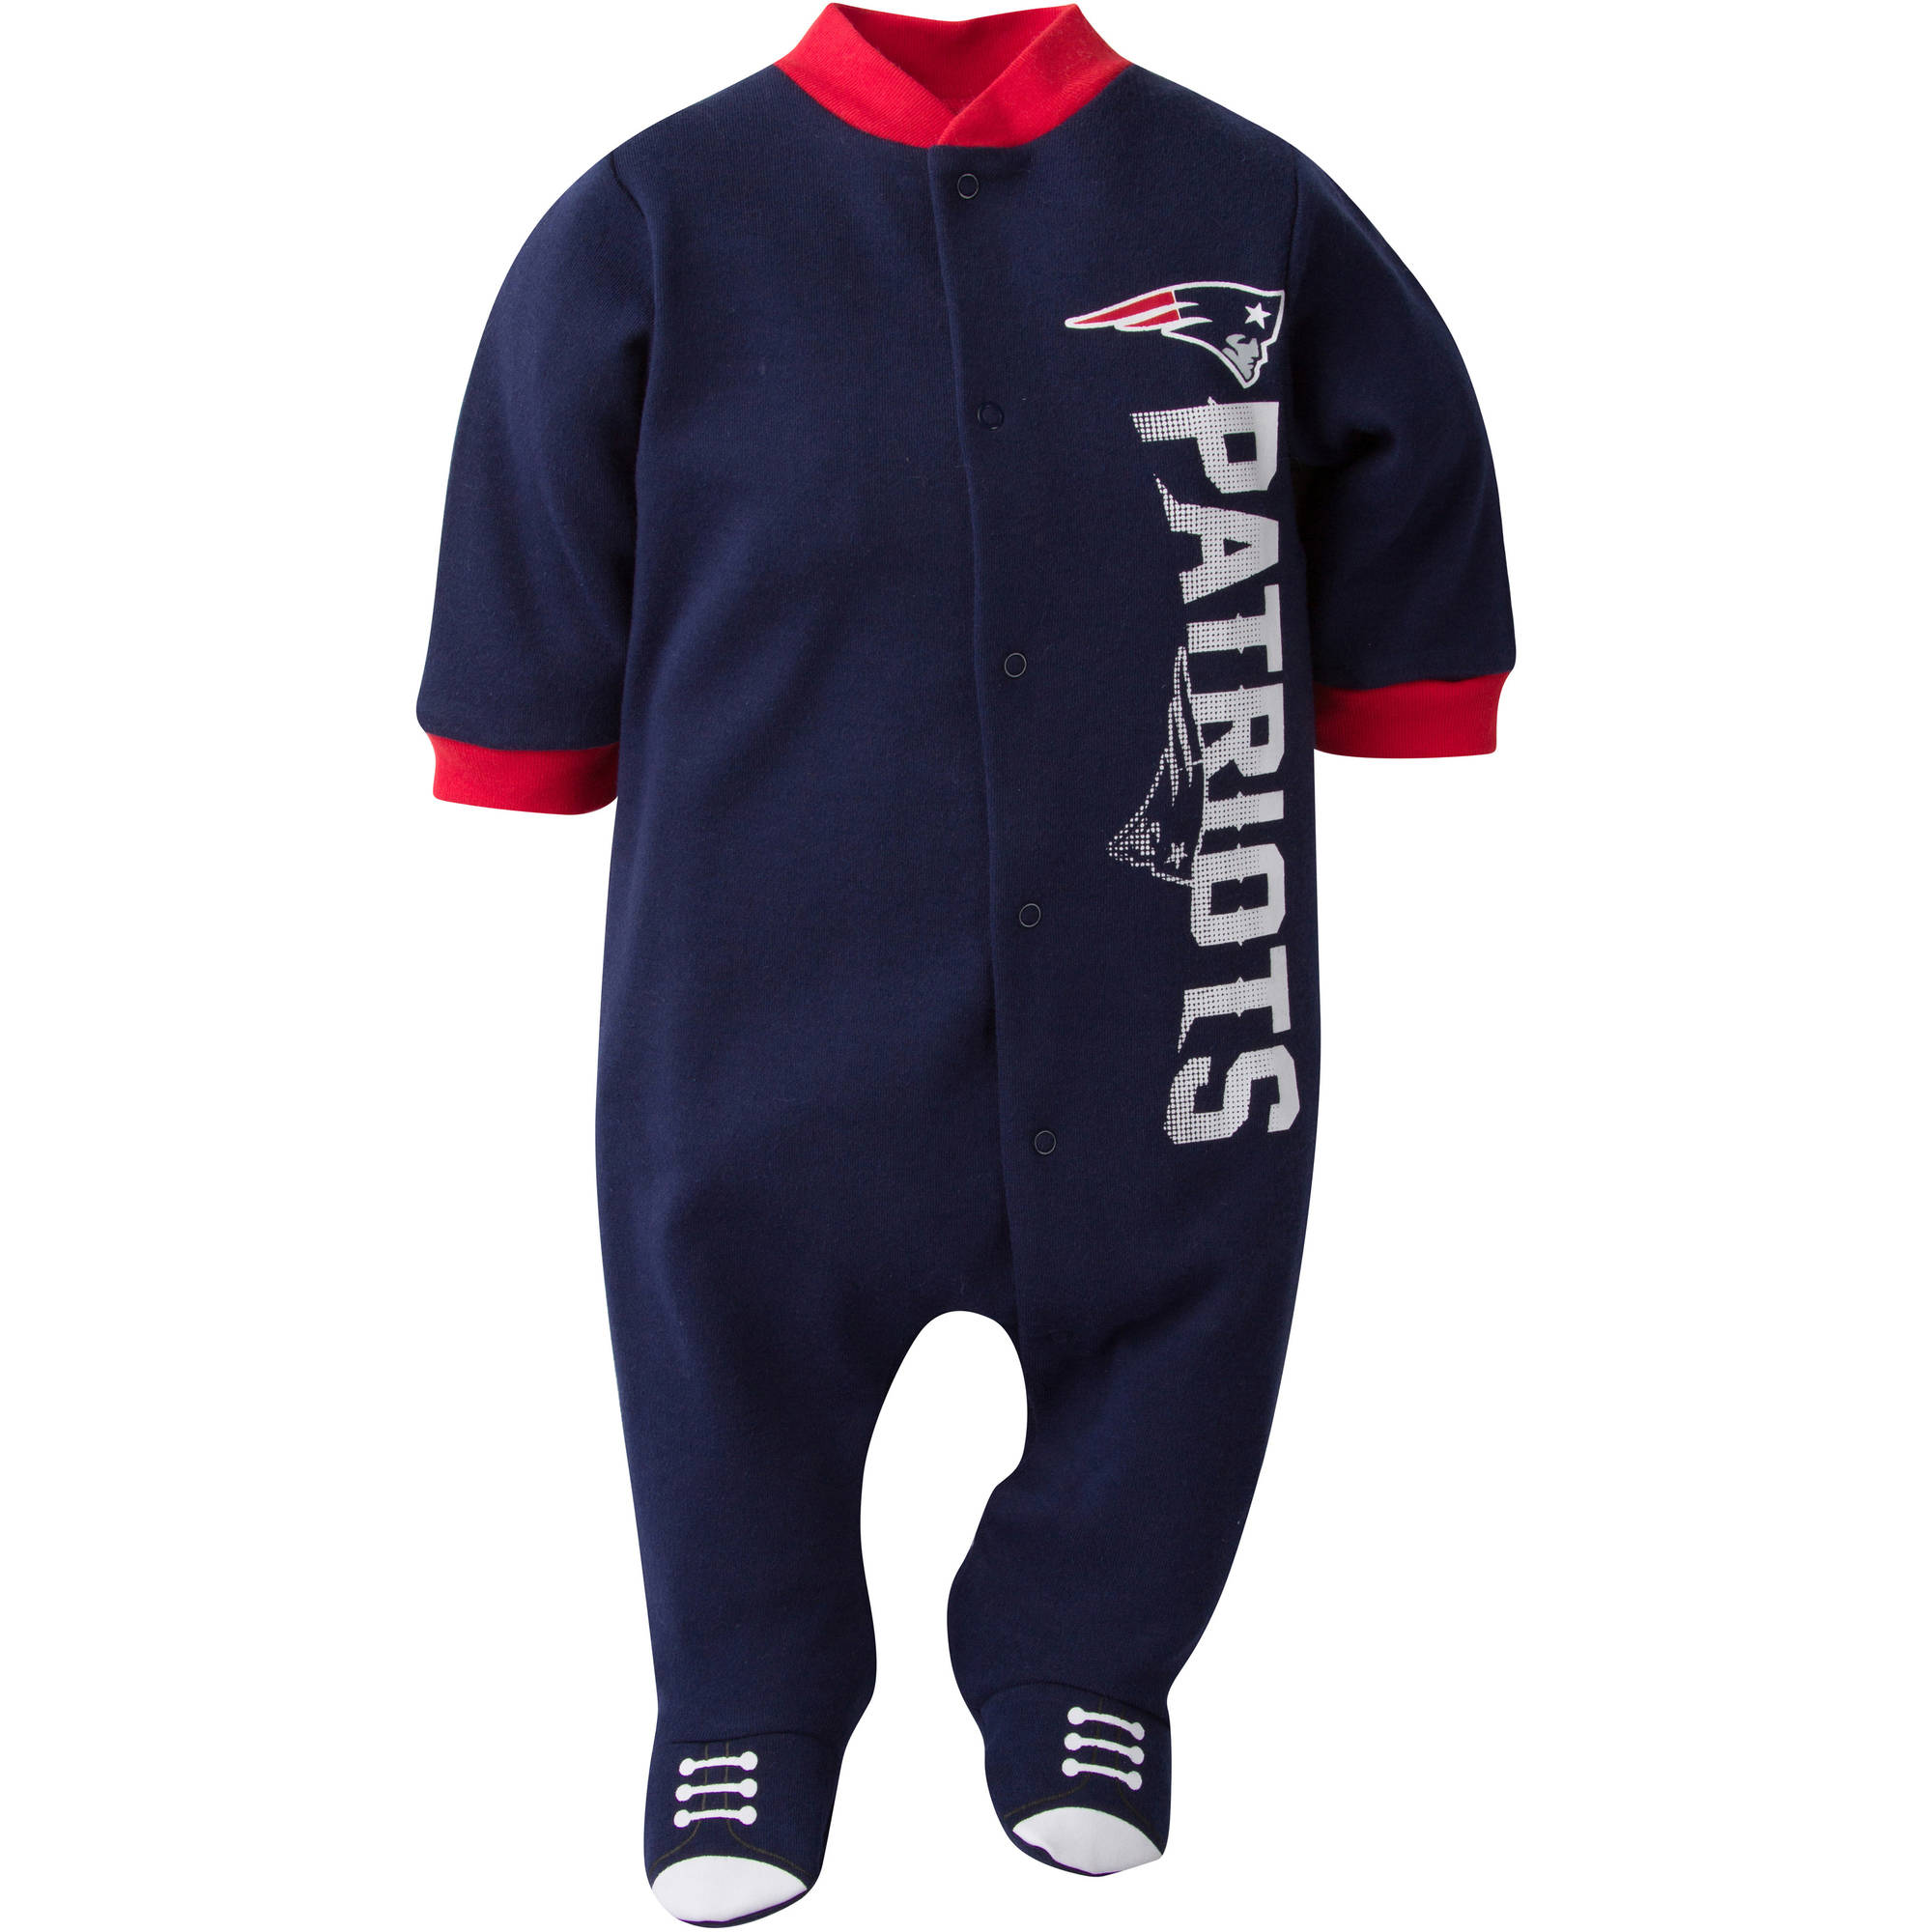 95dd49870ff Patriots Gear For Toddlers